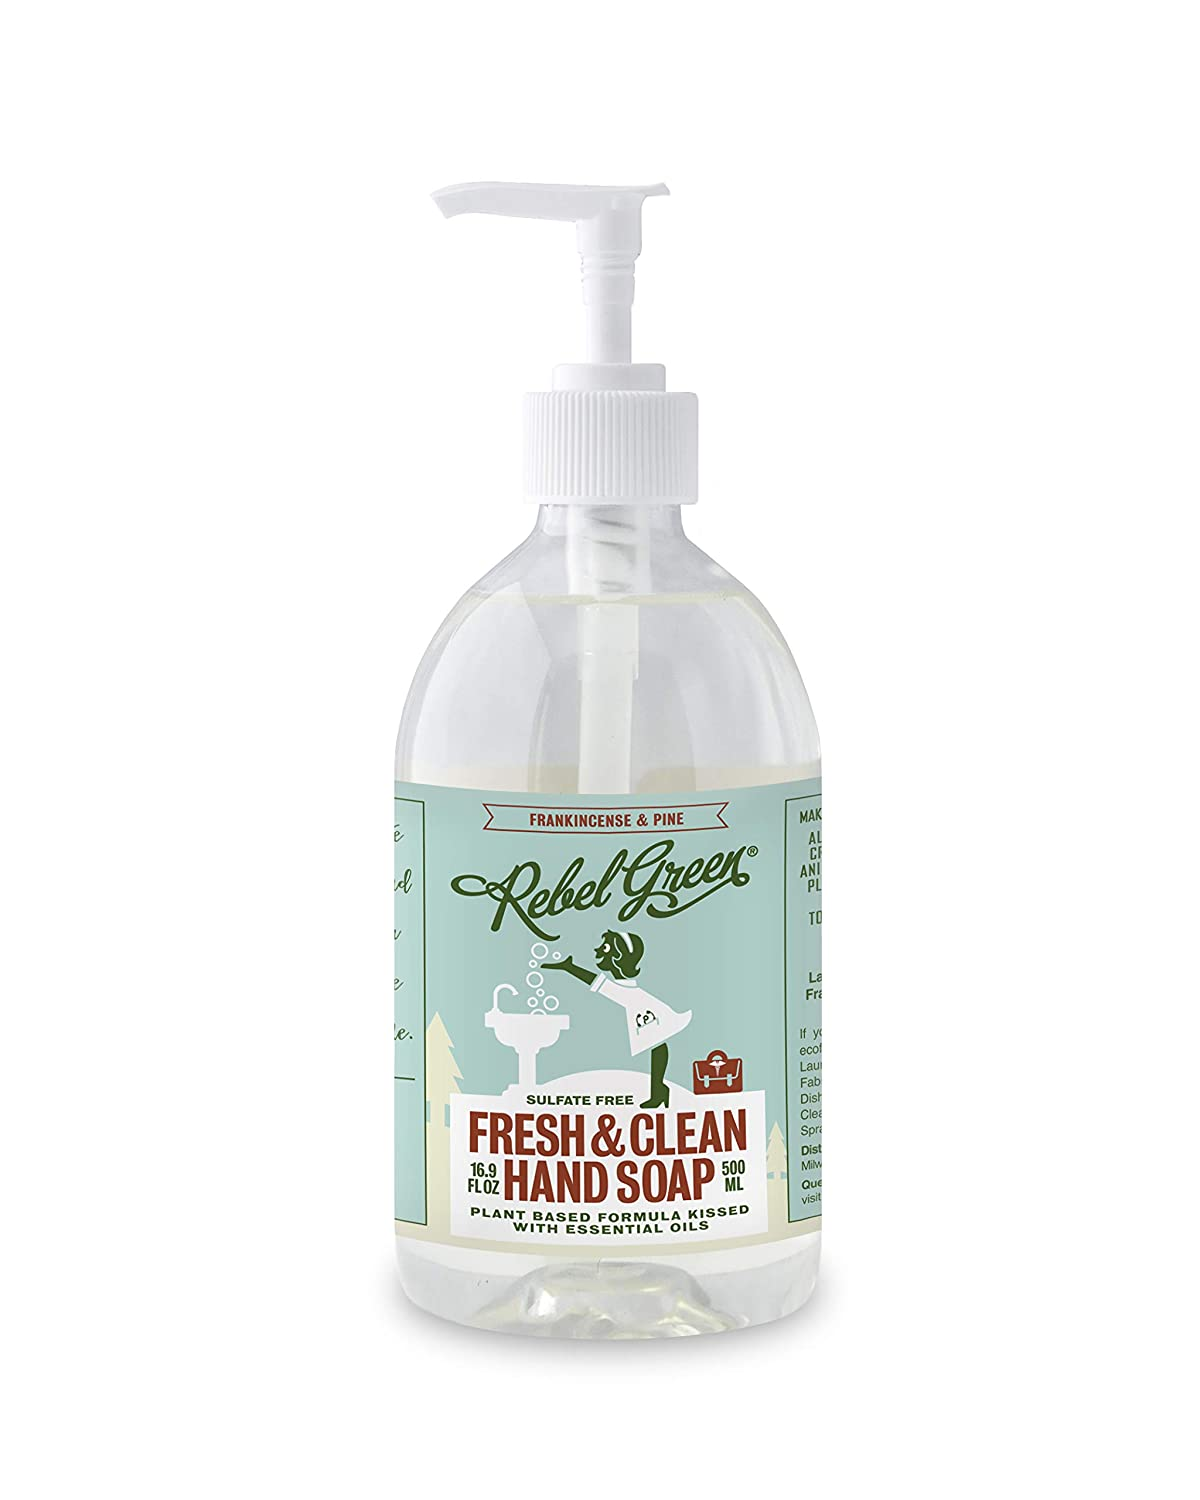 Rebel Green Fresh and Clean Hand Soap Frankincense & Pine, 16.9 oz, Pack of 4